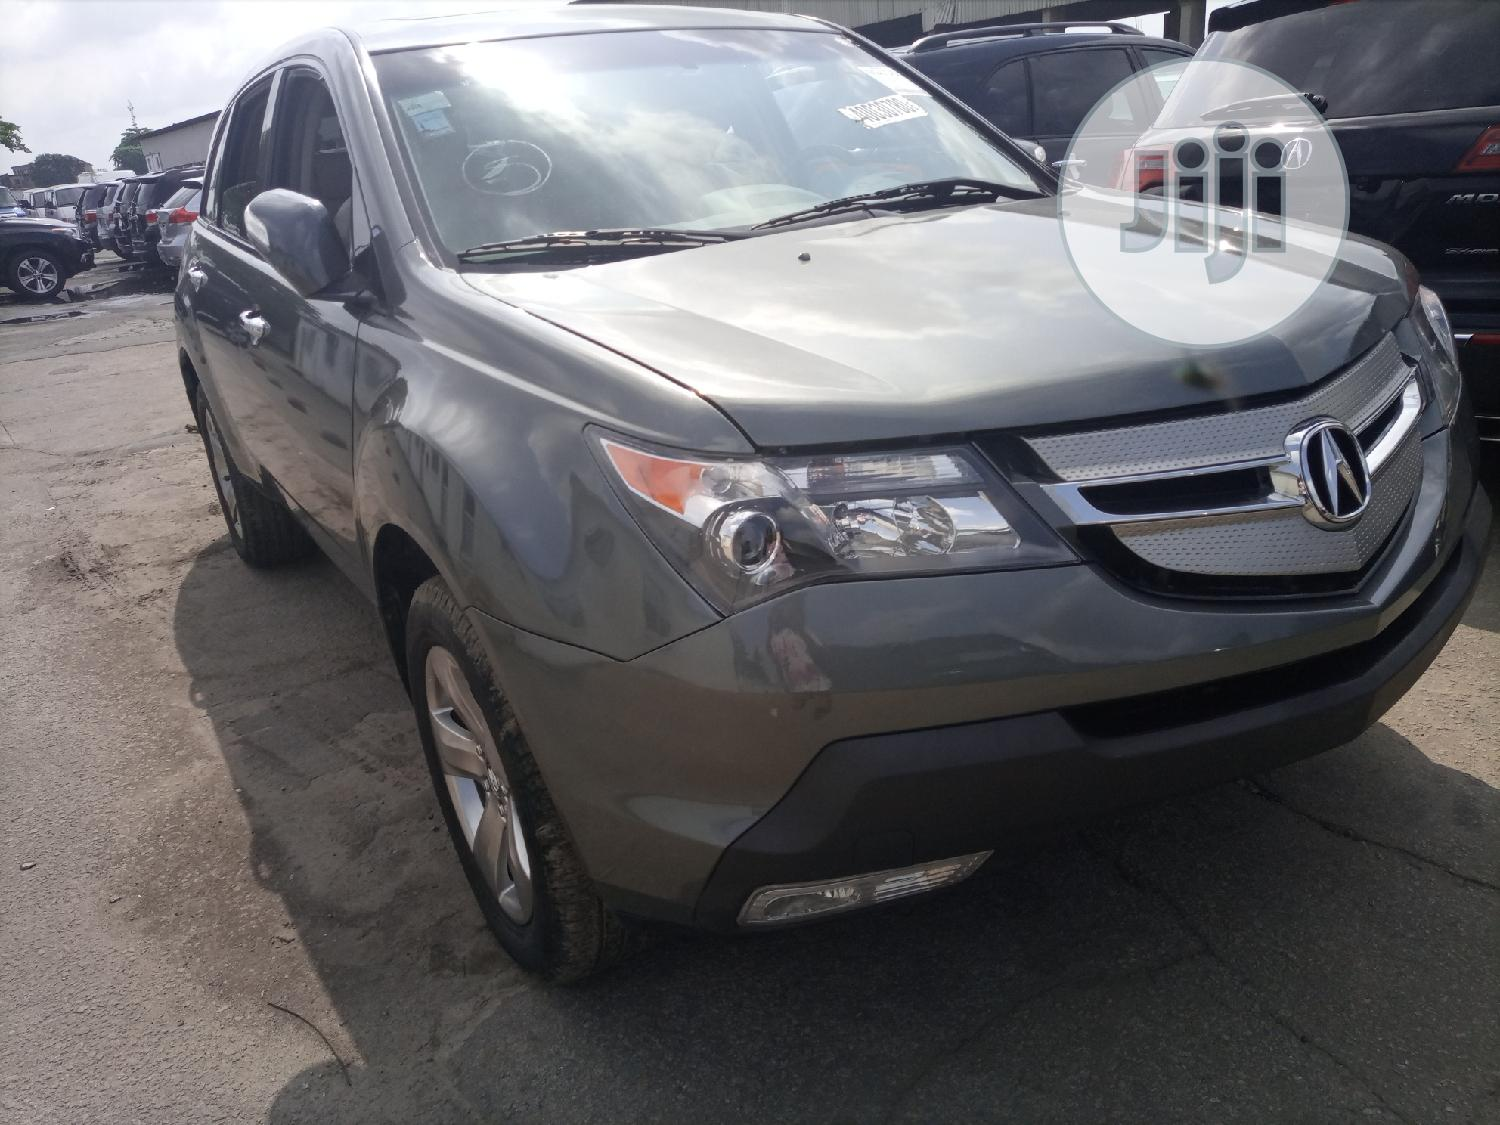 Acura MDX 2008 SUV 4dr AWD (3.7 6cyl 5A) Gray | Cars for sale in Apapa, Lagos State, Nigeria